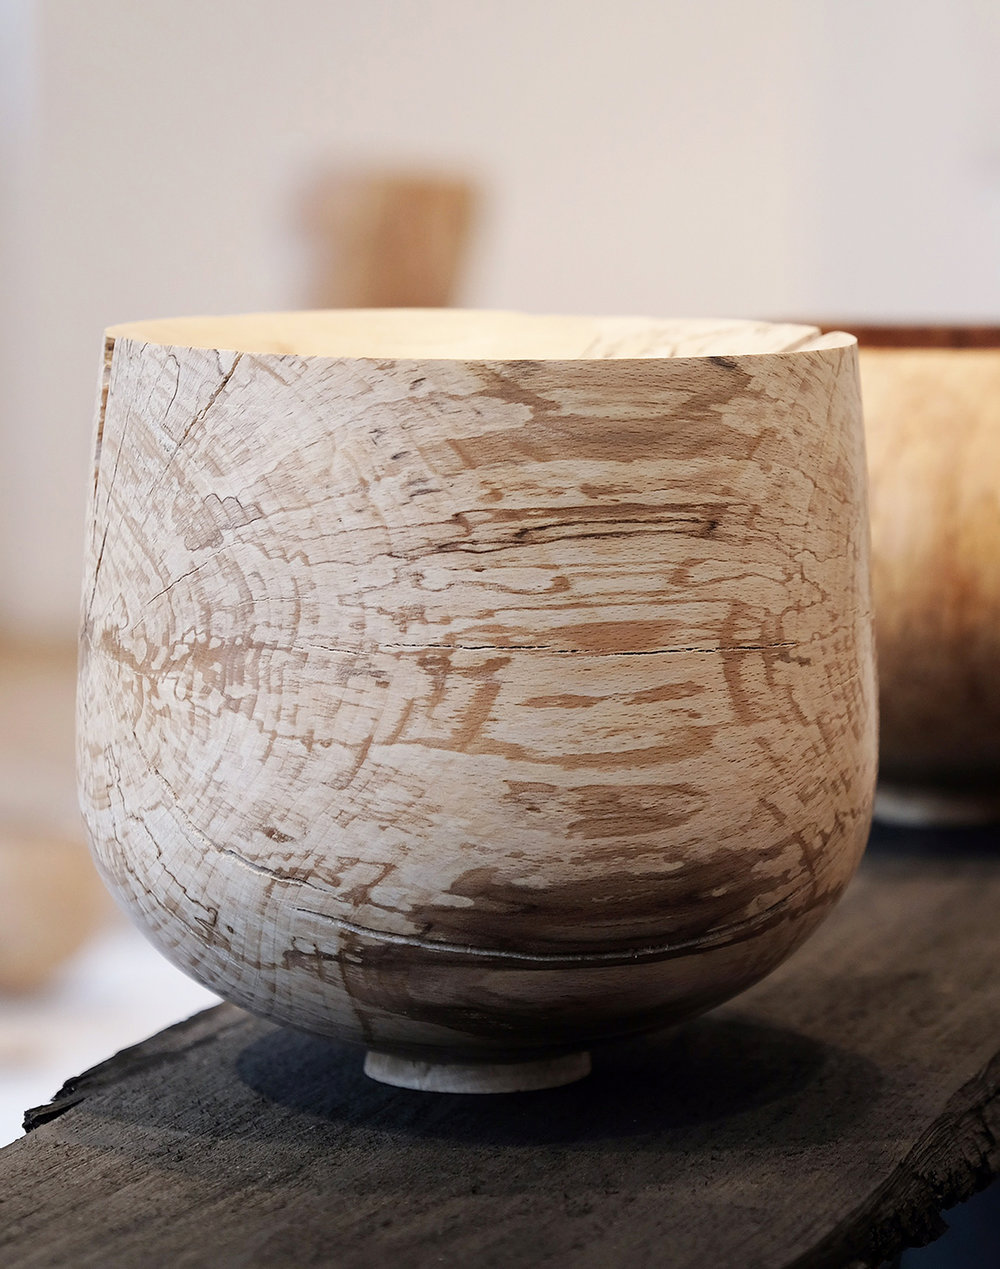 Split Spalted Beech  | spalted beech wood, 2017  Installation View: Unearthed, London Craft Week, London